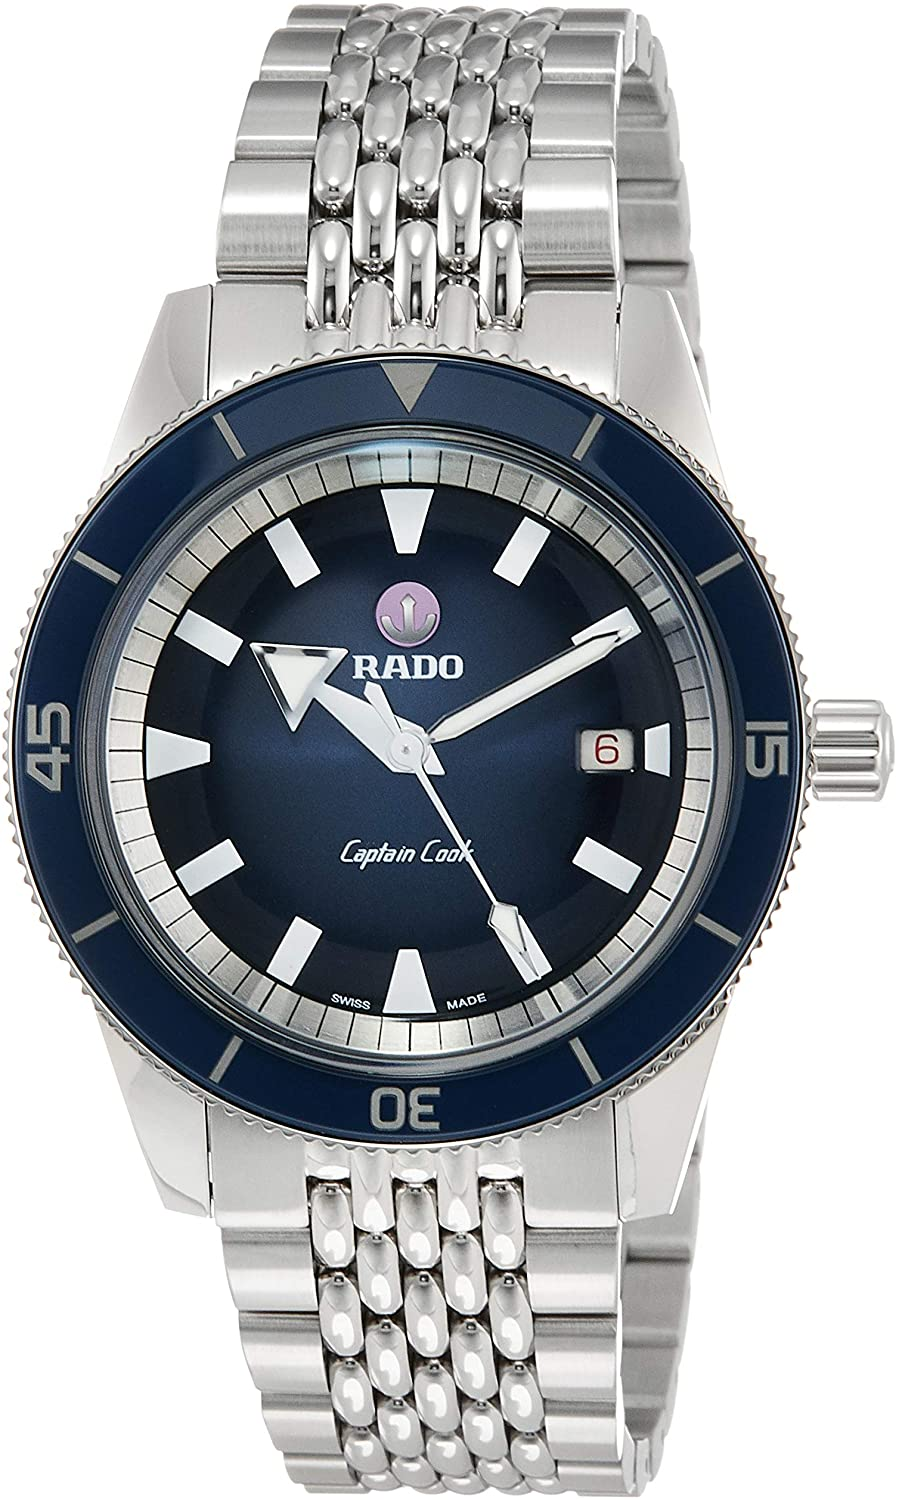 Rado Men's Captain Cook 42mm Steel Bracelet & Case Sapphire Crystal Automatic Blue Dial Watch R32505203 (4419075375217)